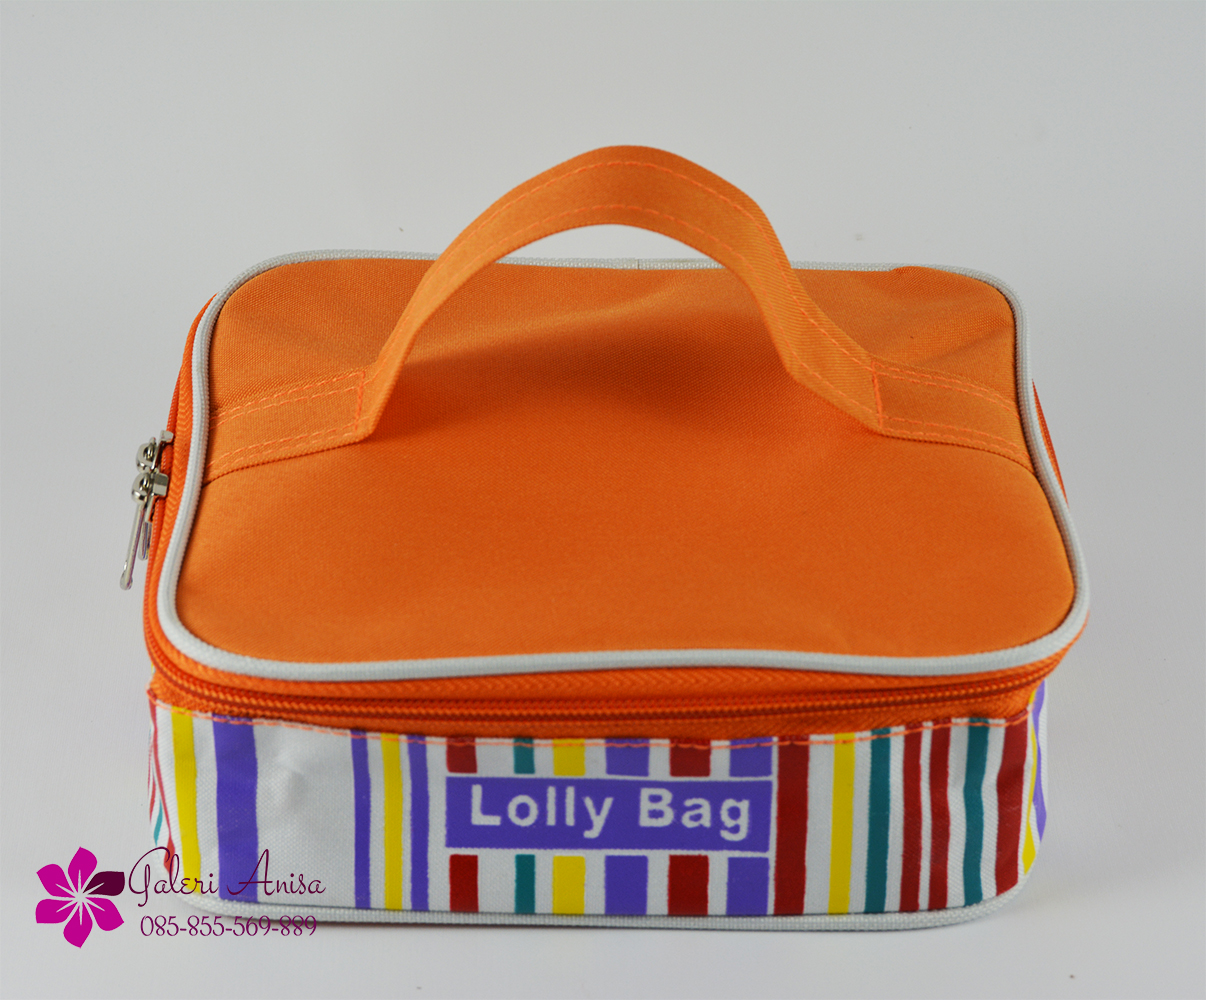 Lolly Bag Bawa Bekal Makan Lolly Tup